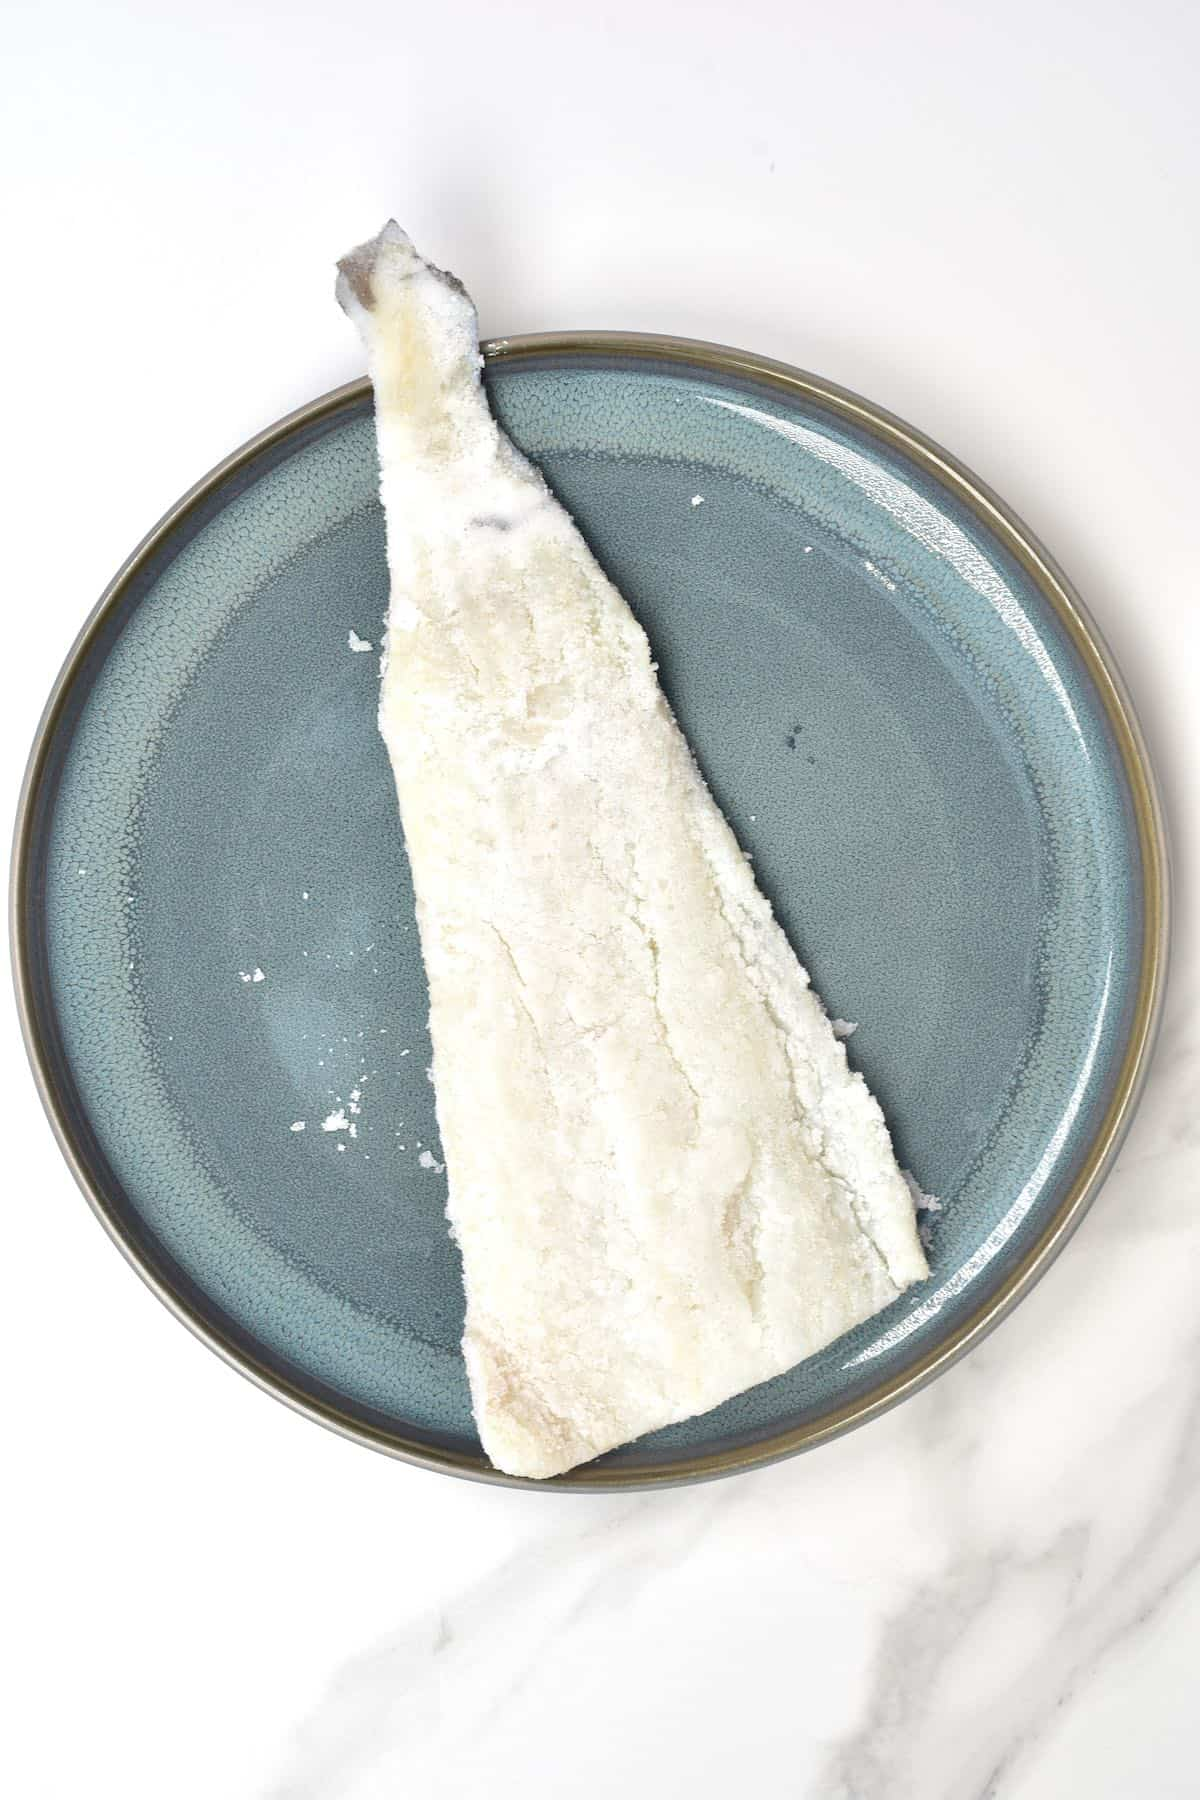 Salted cod fish in a plate